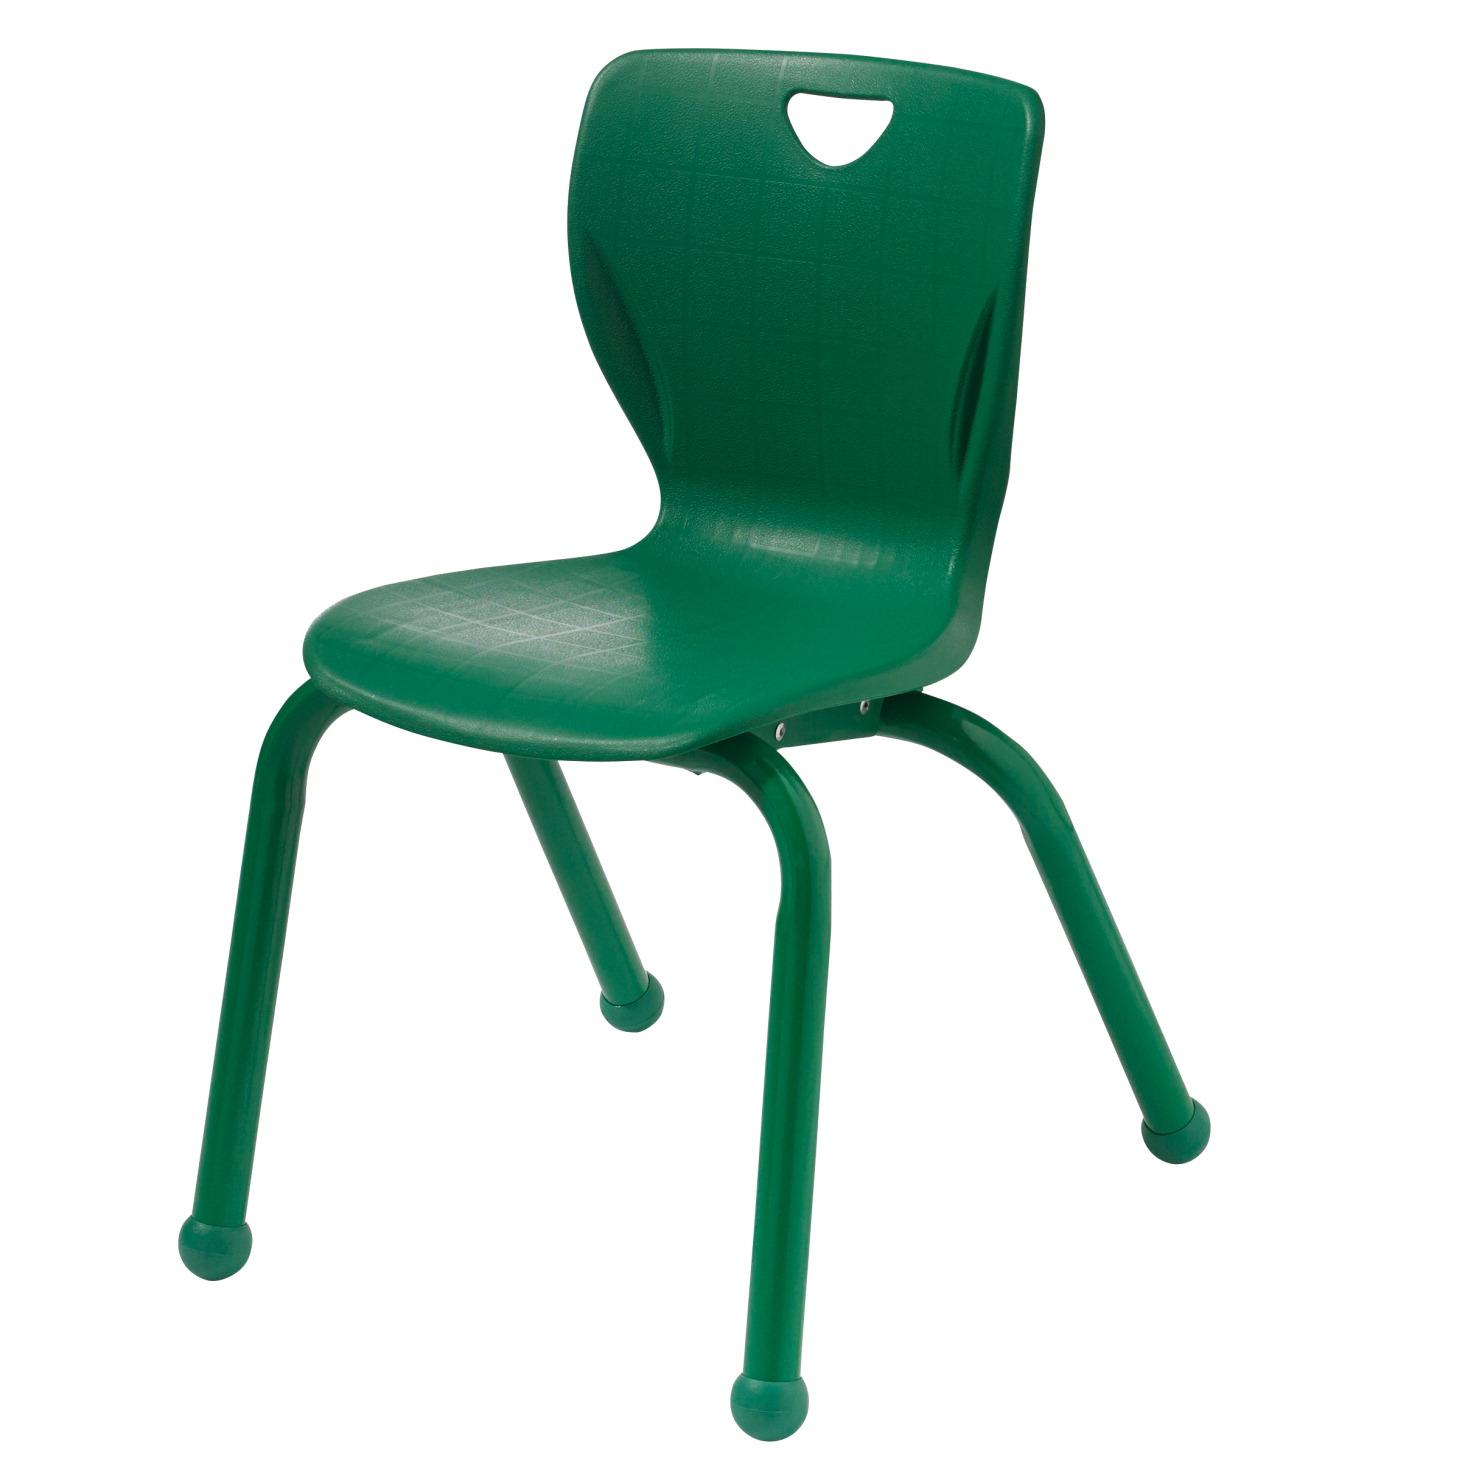 Classroom Select Contemporary Chair with Ball Glides, 16 in Seat Height, Matching Frame